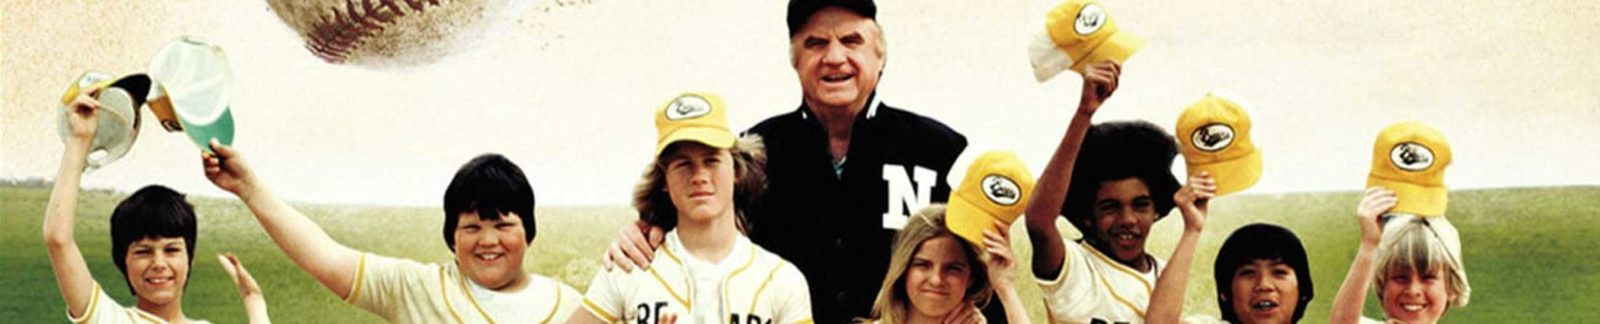 The Bad News Bears TV series - header